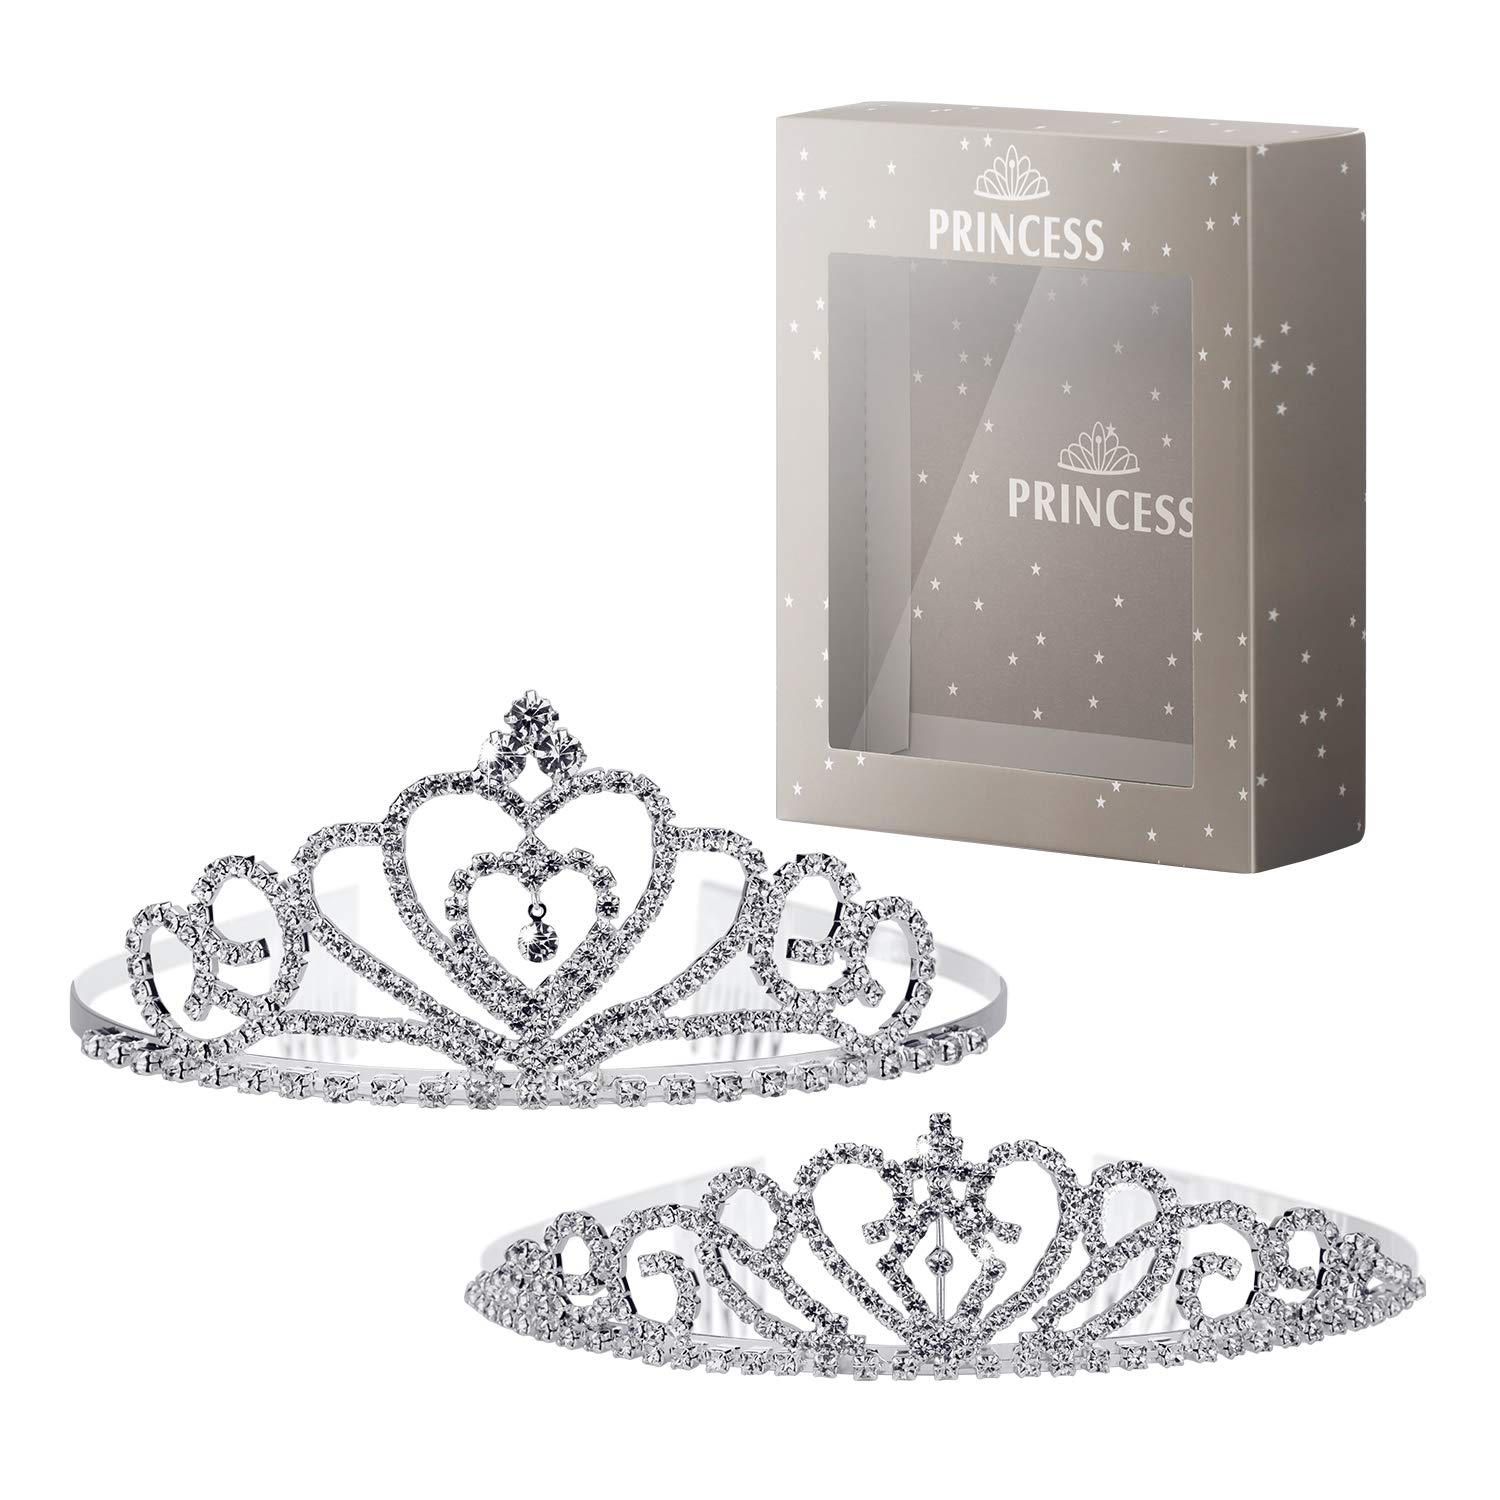 Rhinestone Crystal Tiara Crown Queen Crown, Birthday Pageant Wedding Prom Bridal Crown, Gorgeous Princess Crown for Girl or Women, Exquisite Decor Headband with Comb Pin(2 PACK) AwesomeWare